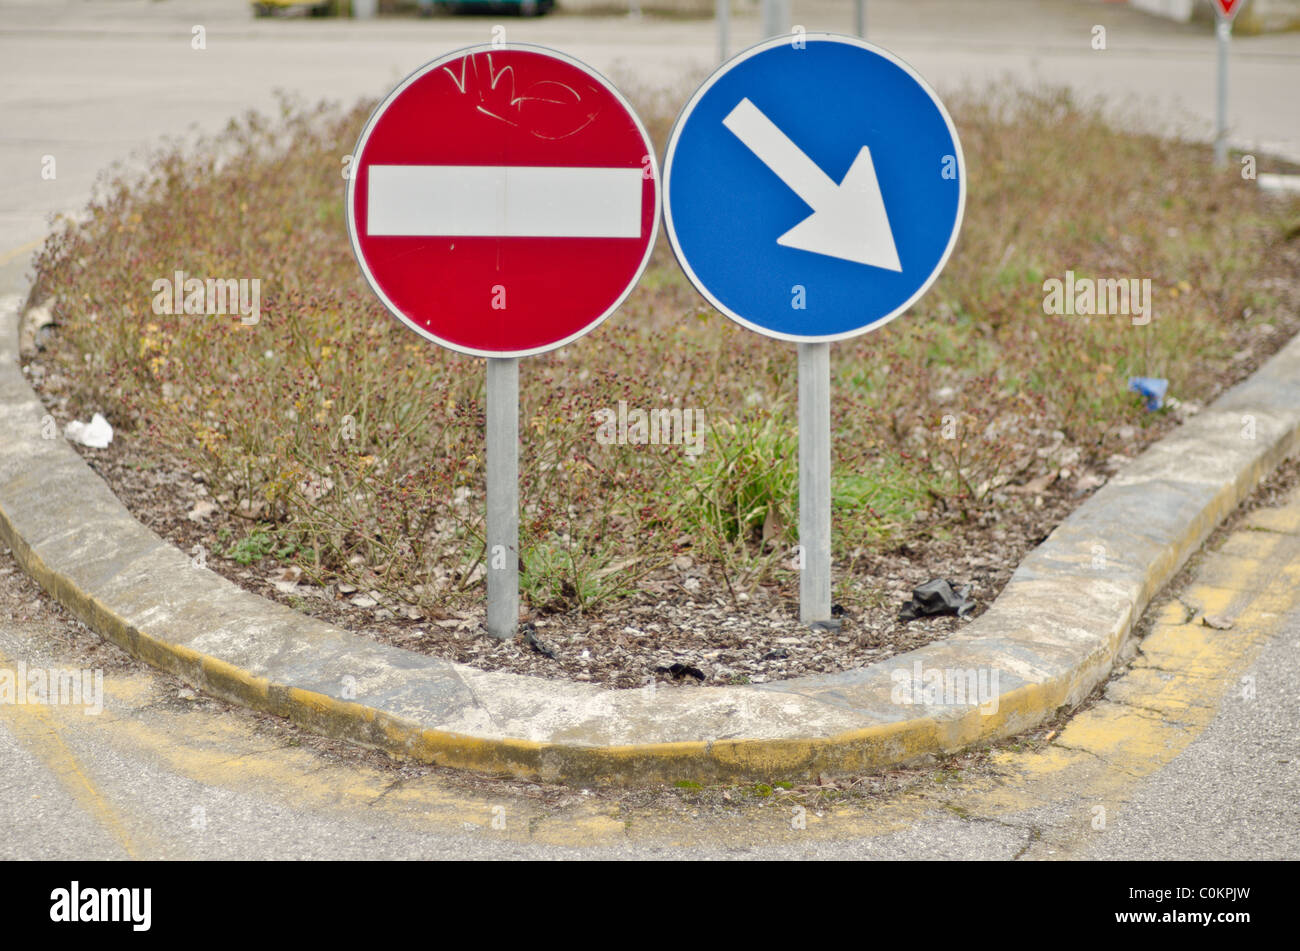 No entry one way roundabout - Stock Image